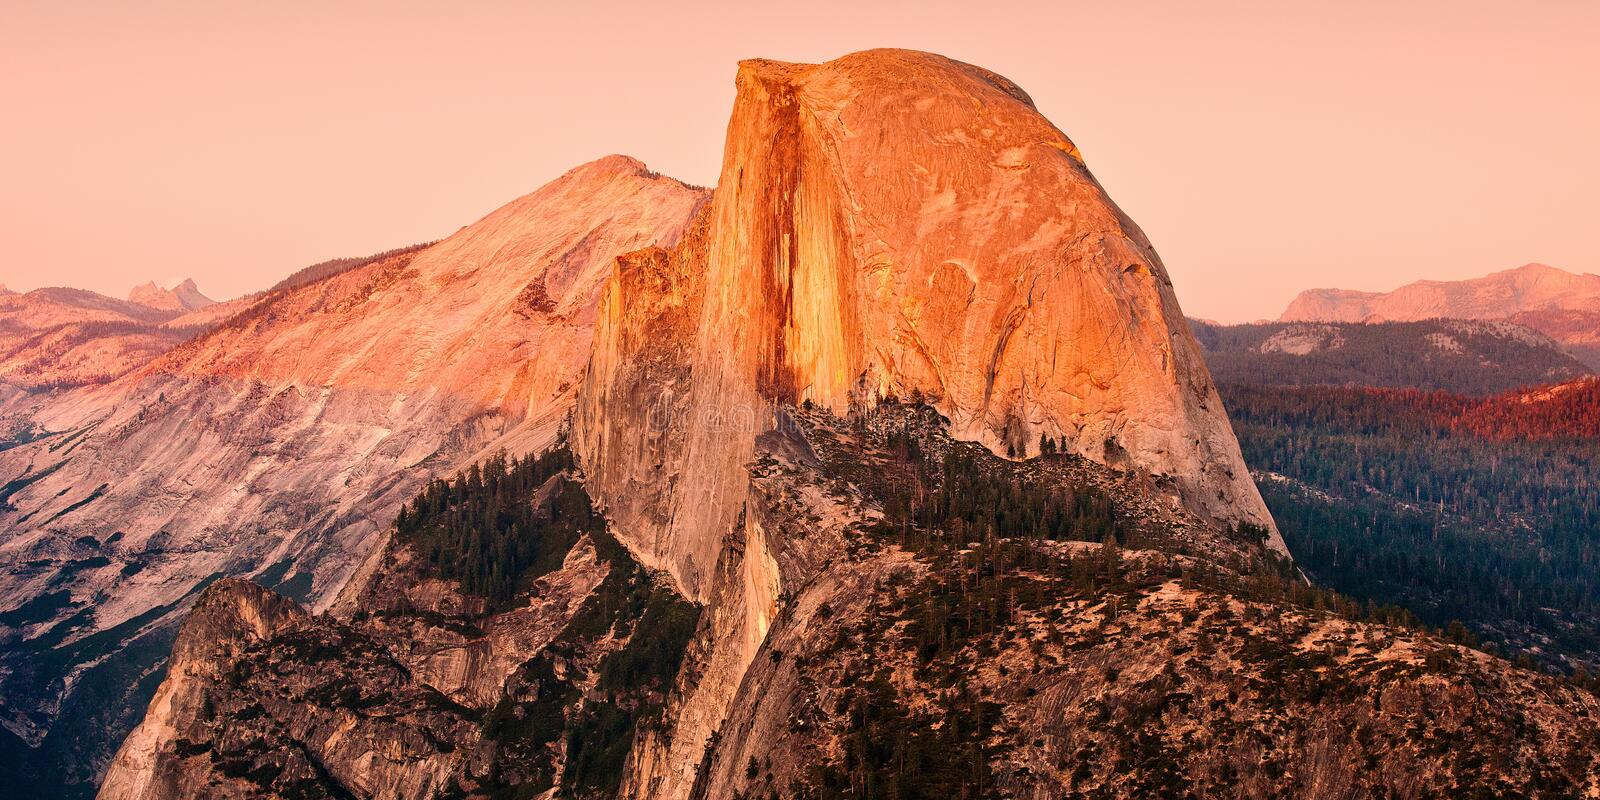 Mesmerizing scenery of a rock formation in Yosemite National Park, United States of America. A mesmerizing scenery of a rock formation in Yosemite National Park stock photo